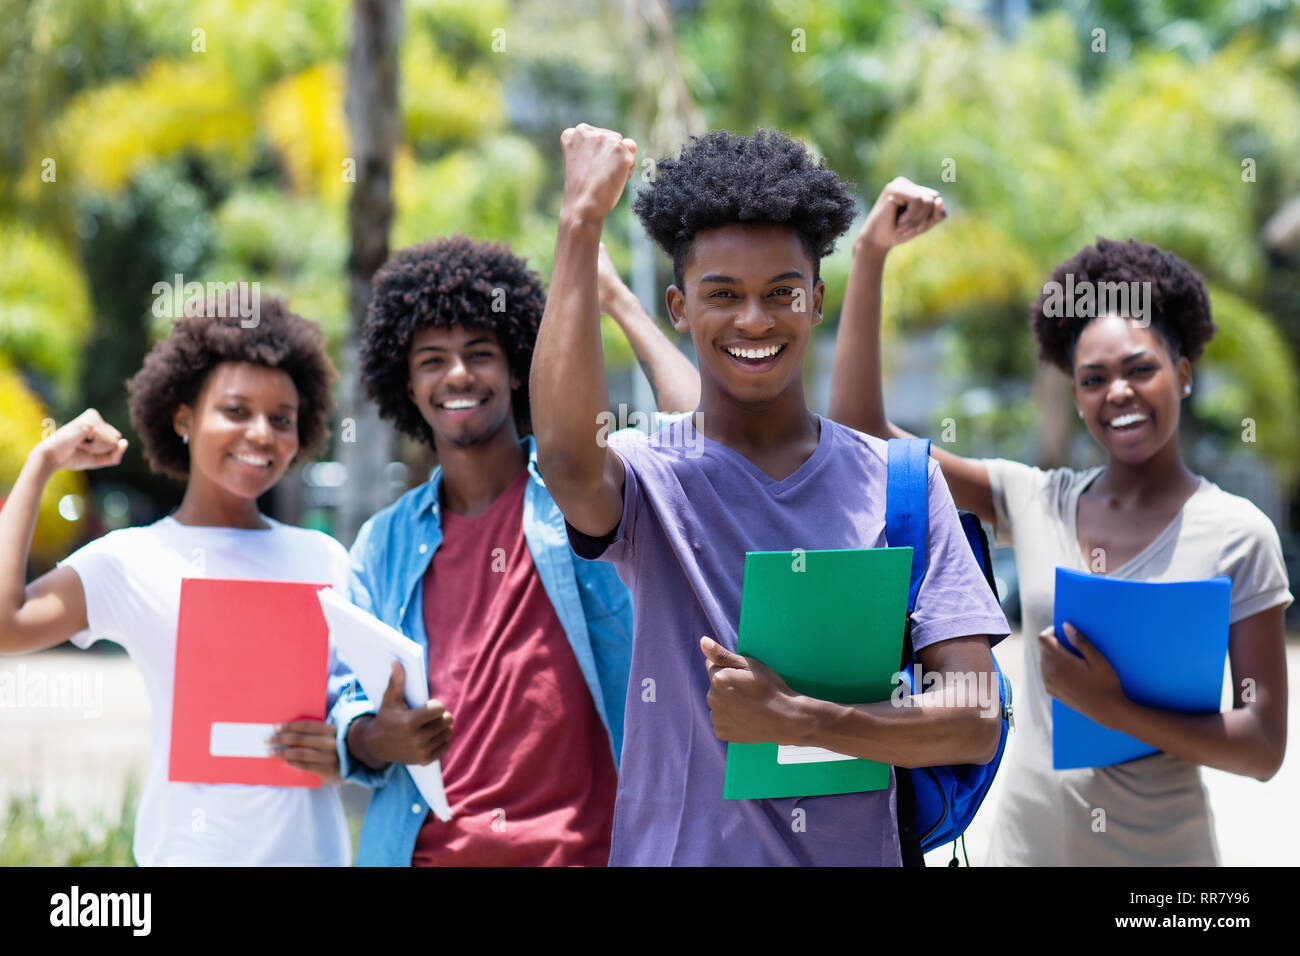 Cheering african male student with group of african american students outdoor in the summer - Stock Image